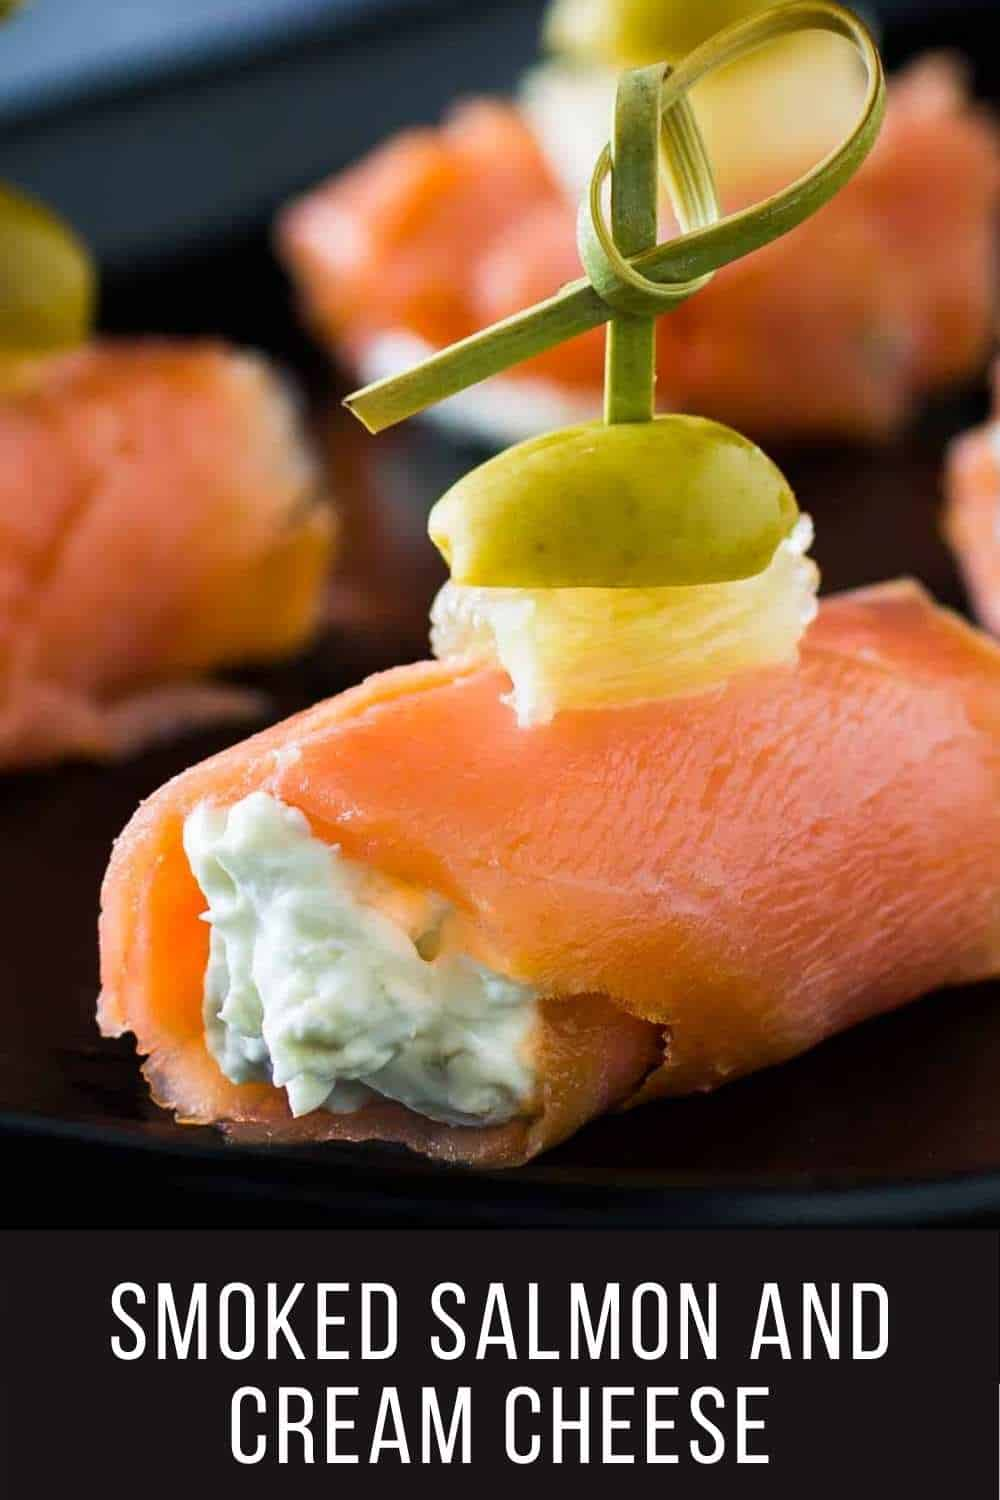 Close up shot of multiple smoked salmon bites on a black plate.